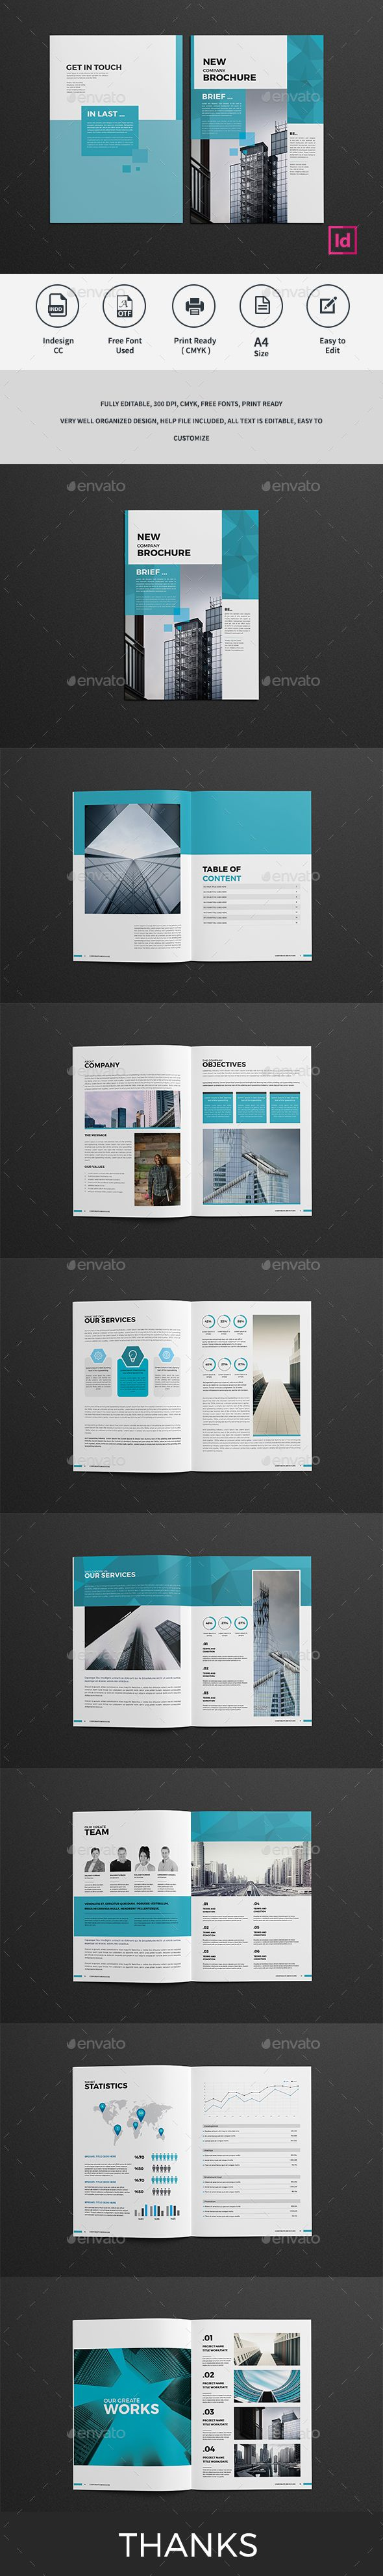 Company Profile Brochure   Company Profile Brochures And